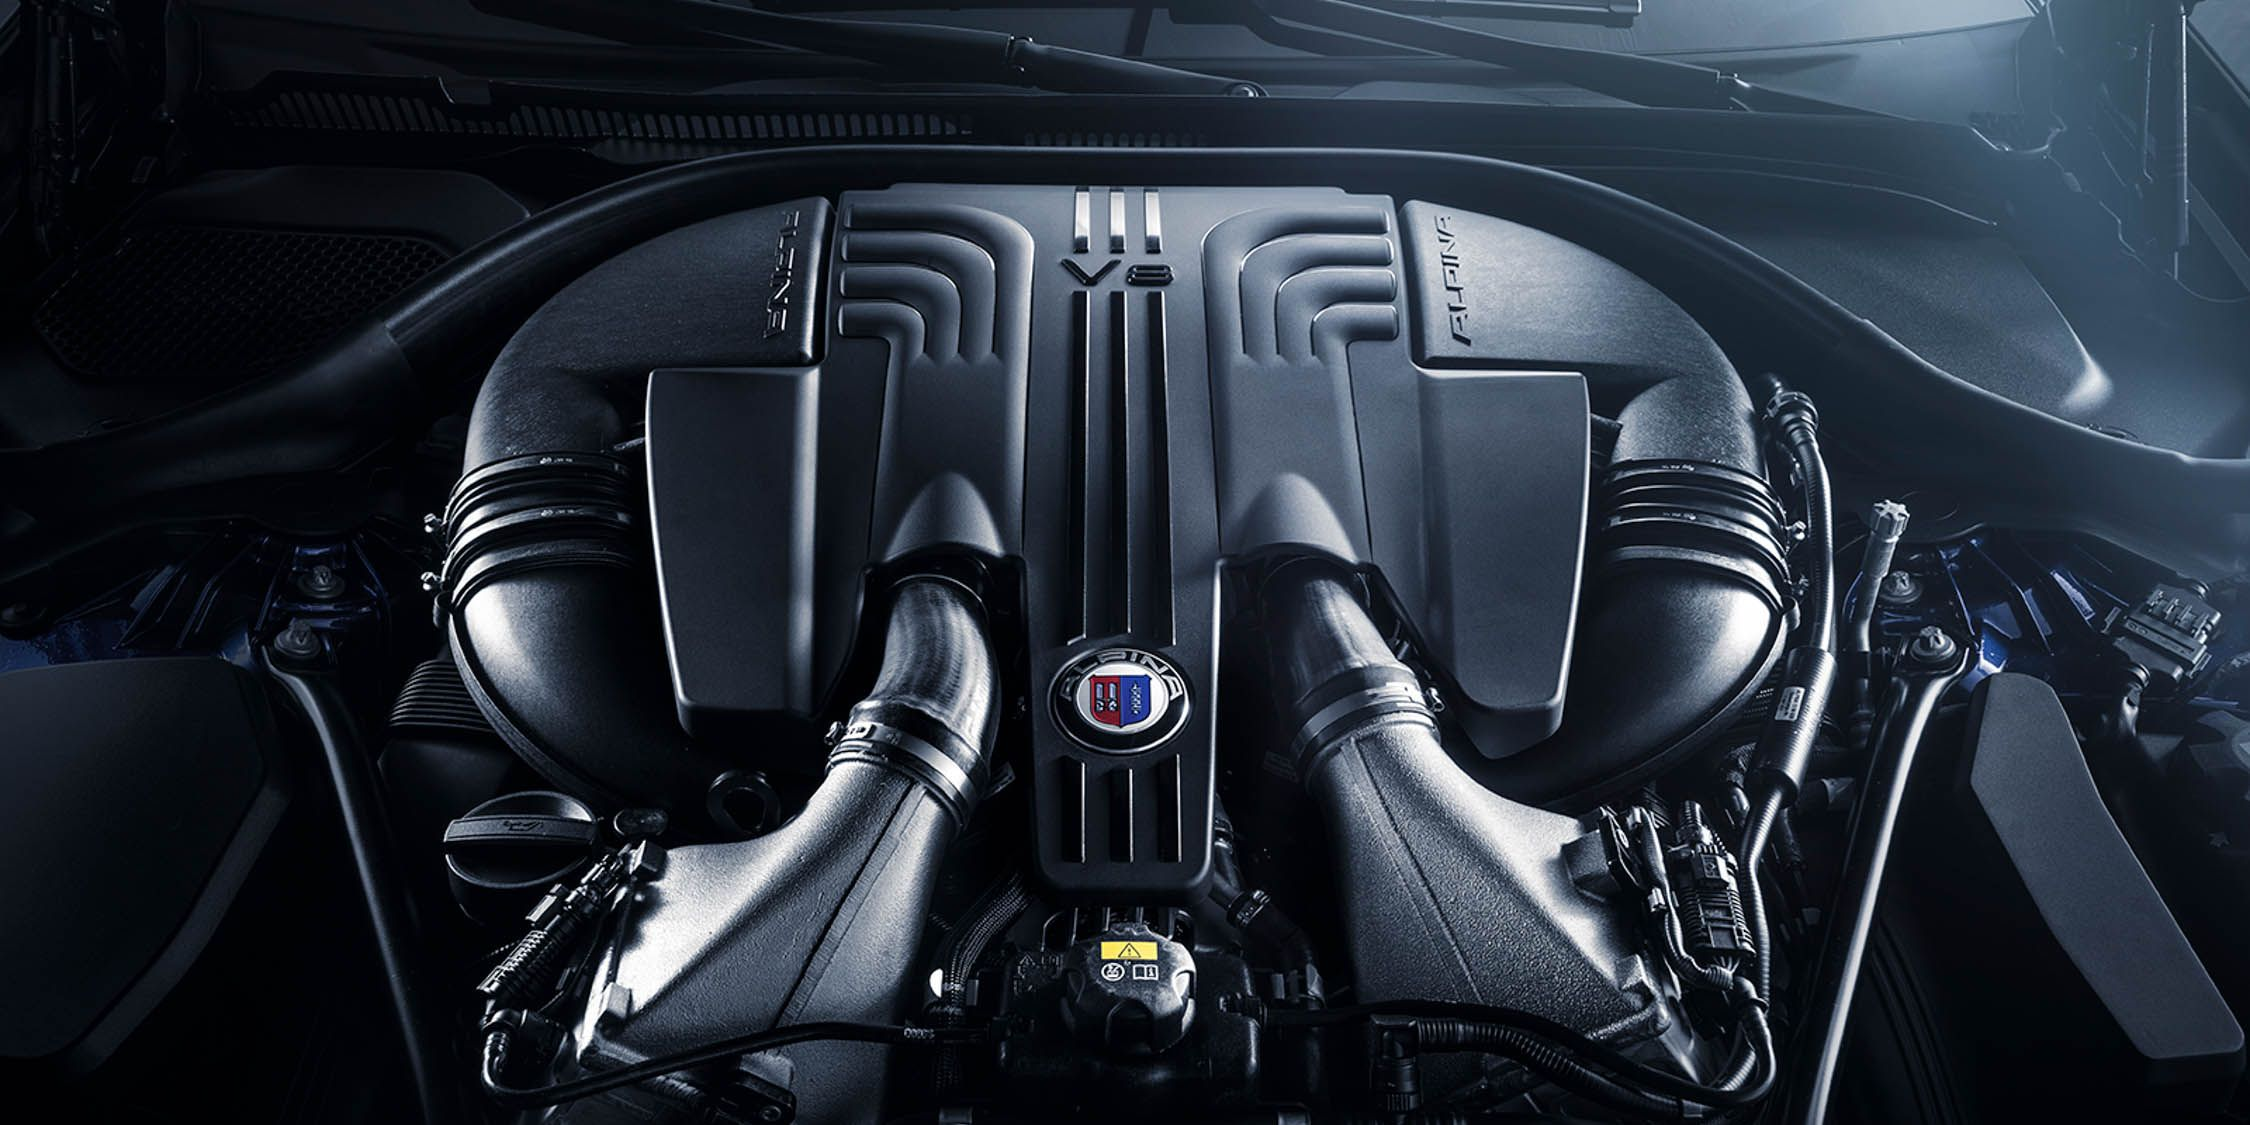 With a New BMW 5-series Come . . . Smokin' Hot New Alpina B5s!